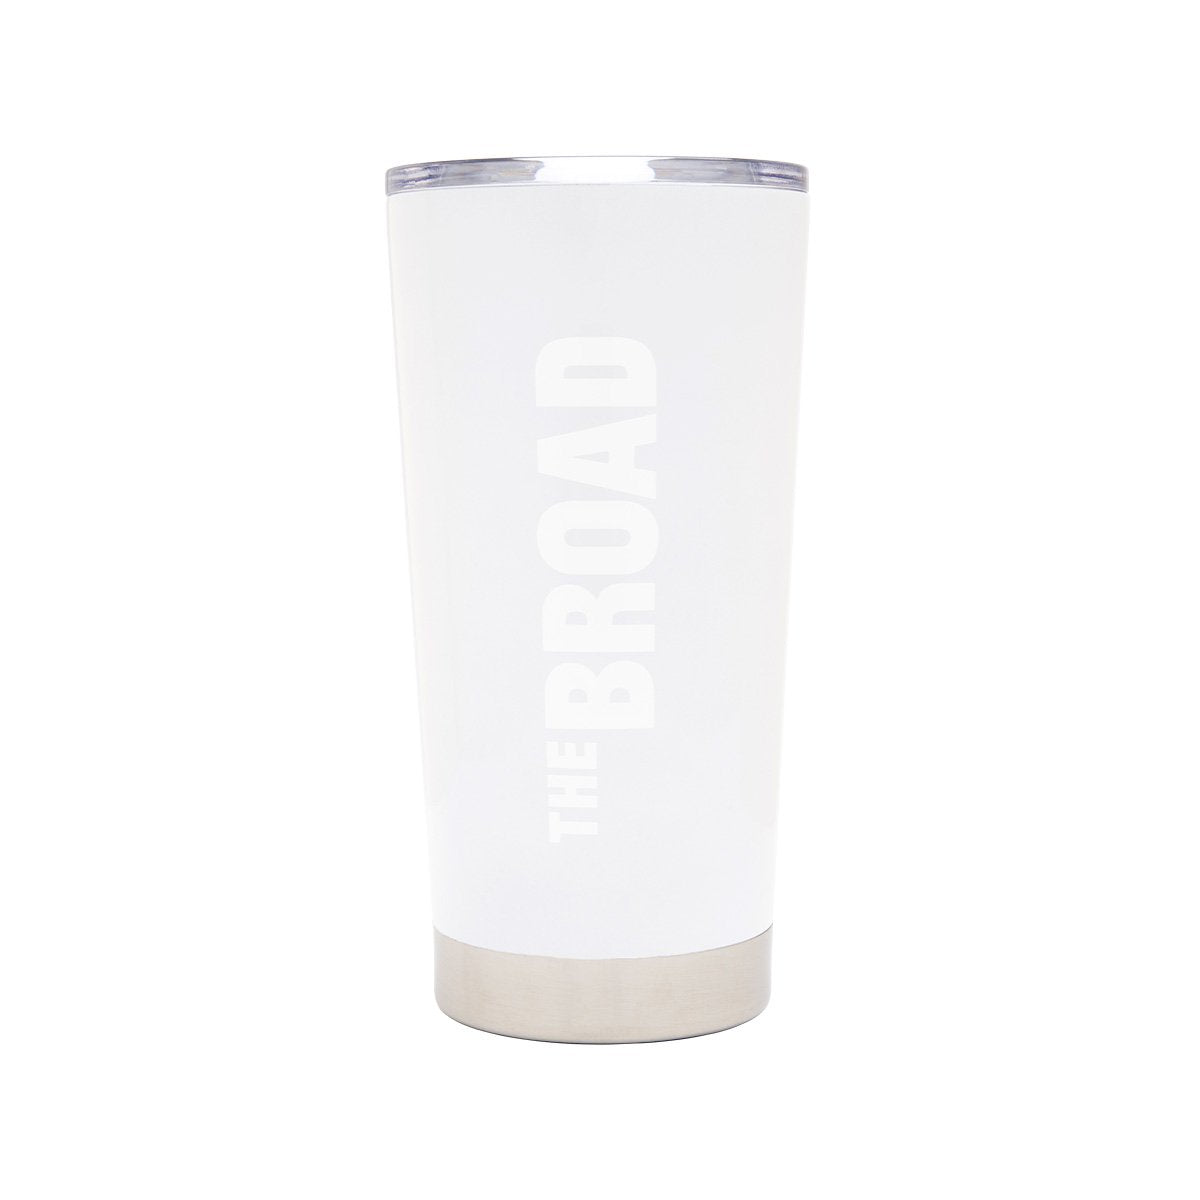 The Broad Tumbler